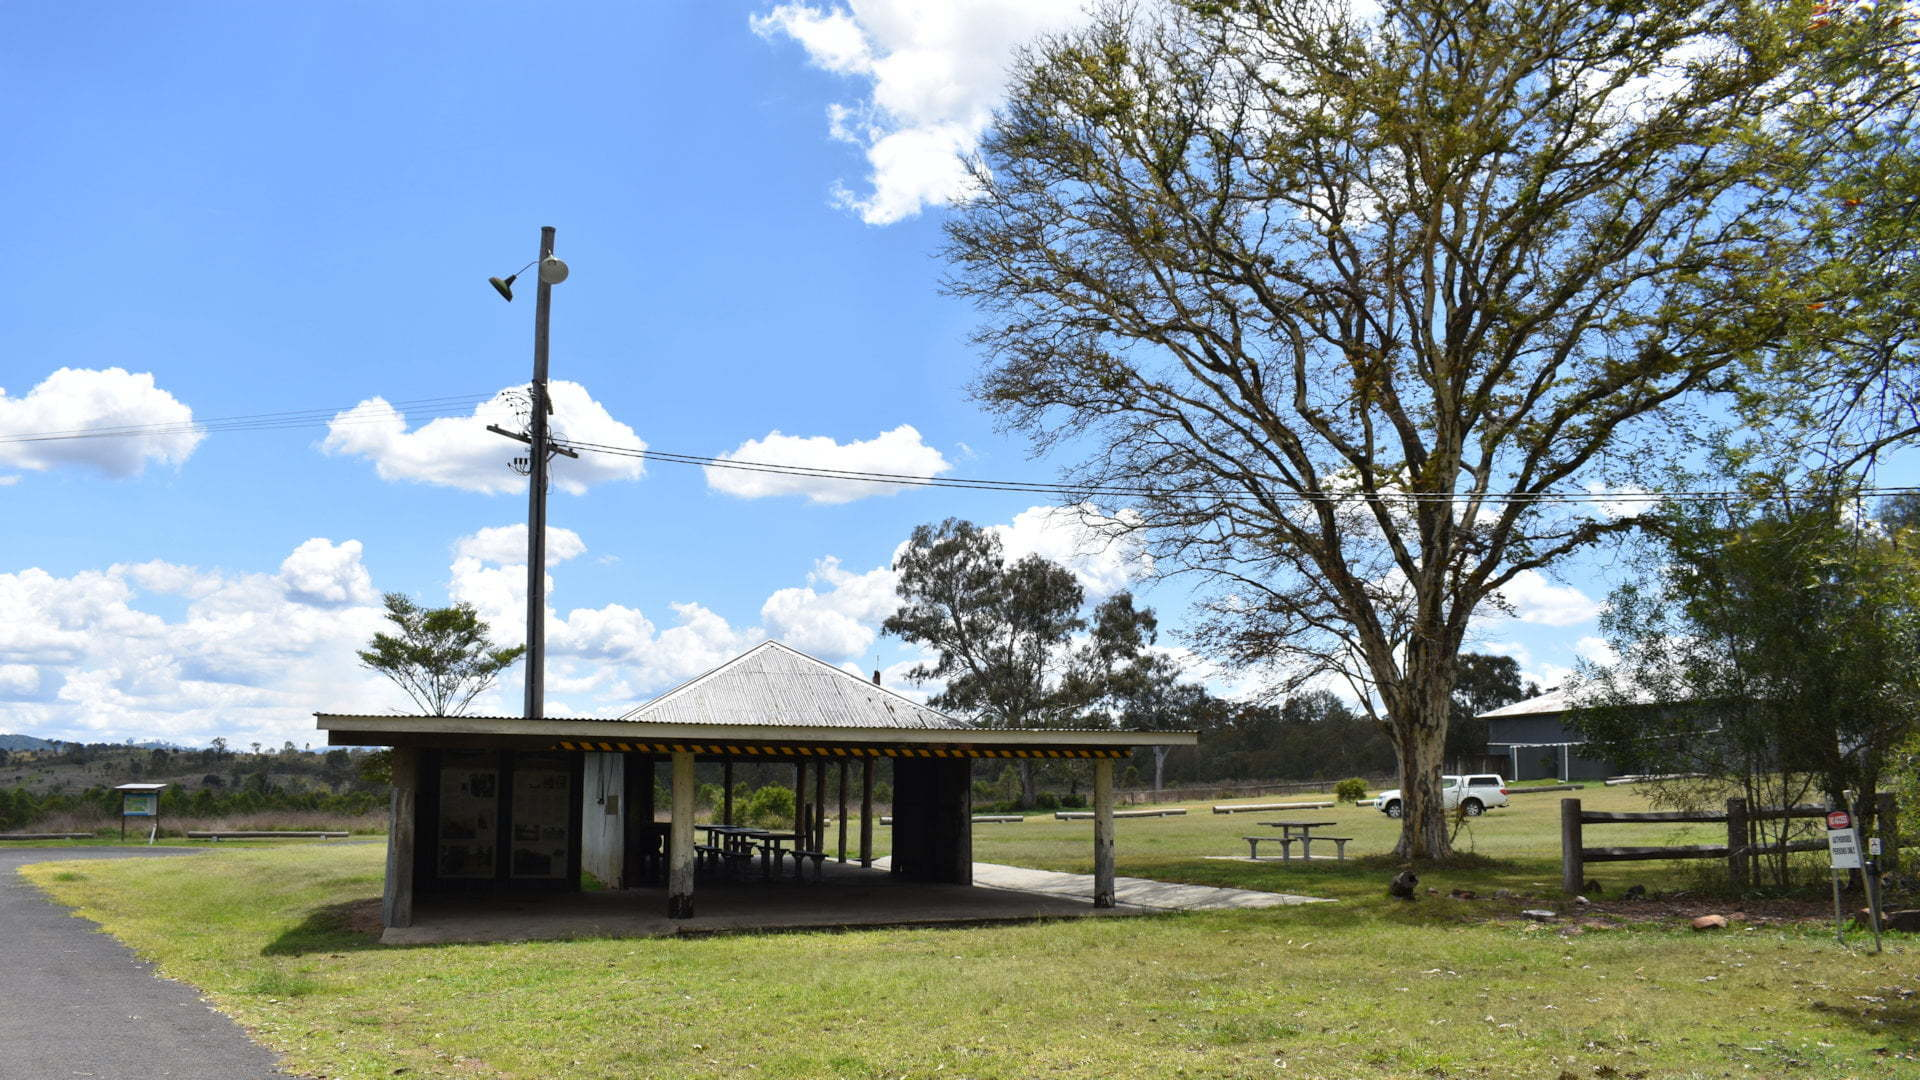 Work shed at Lilybrook Recreation Area, the Western Trailhead of the Shoreline Trail along Lake Wyaralong